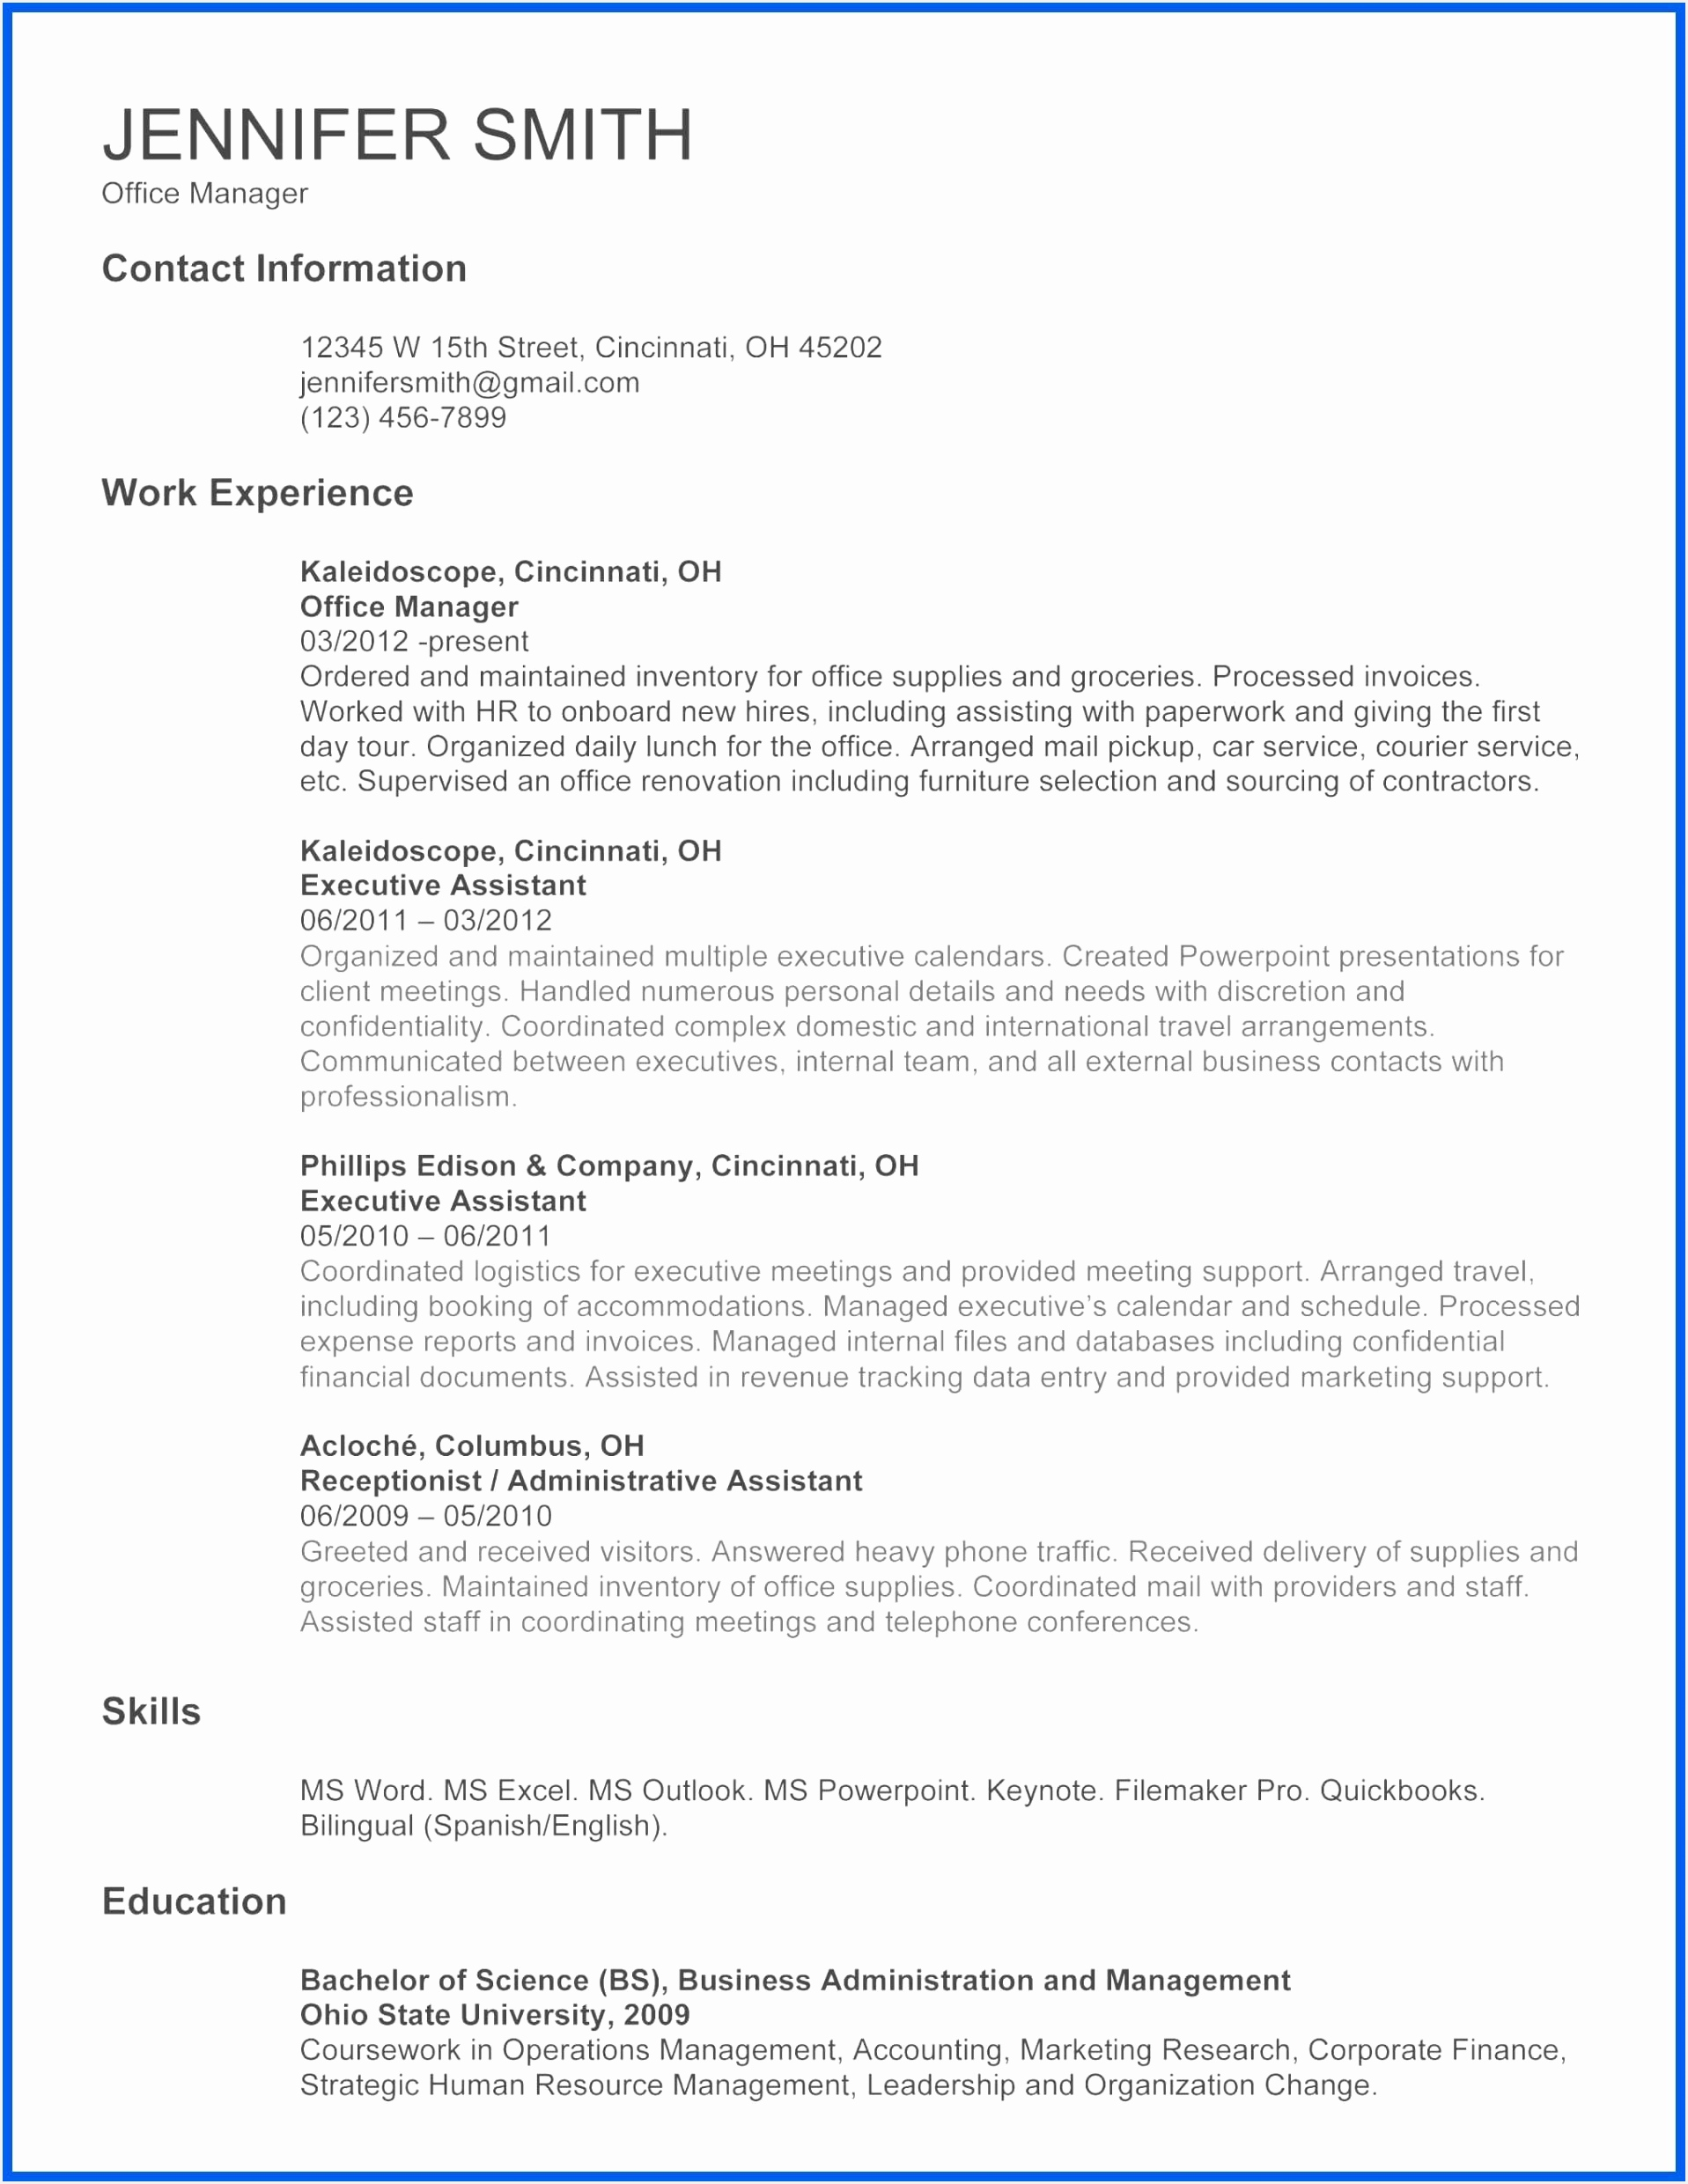 fice Manager Resume Template Elegant ¢Ë†Å¡ Career Change Resume Template Unique Business Resume 0d Free 24811917cnczt